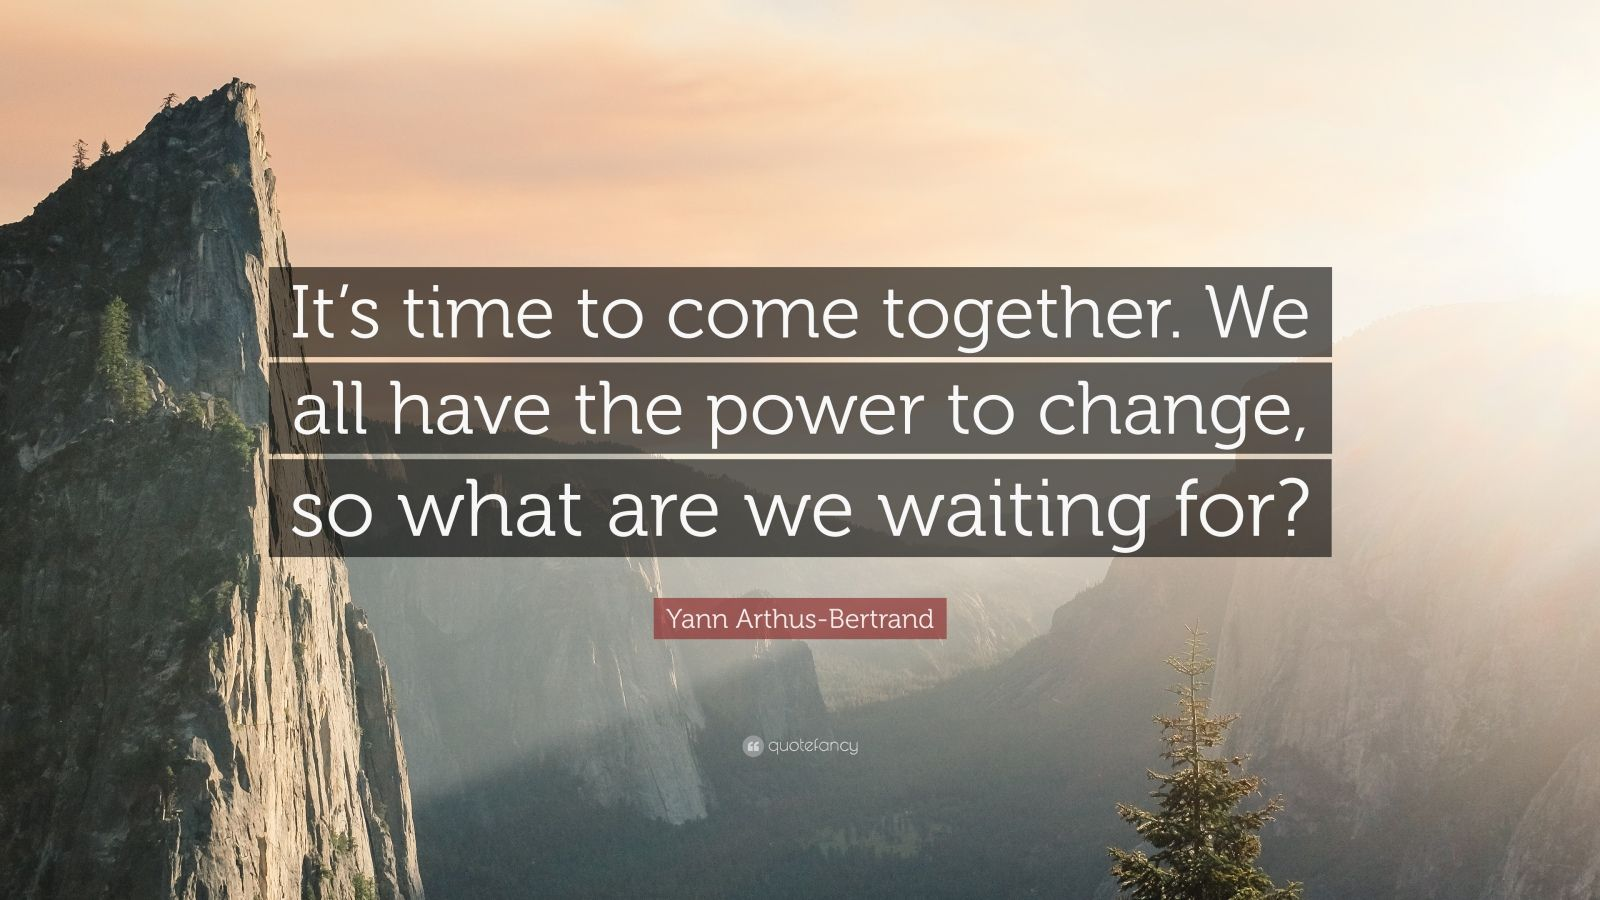 """Yann Arthus-Bertrand Quote: """"It's time to come together. We all have the power to change, so what are we waiting for?"""""""